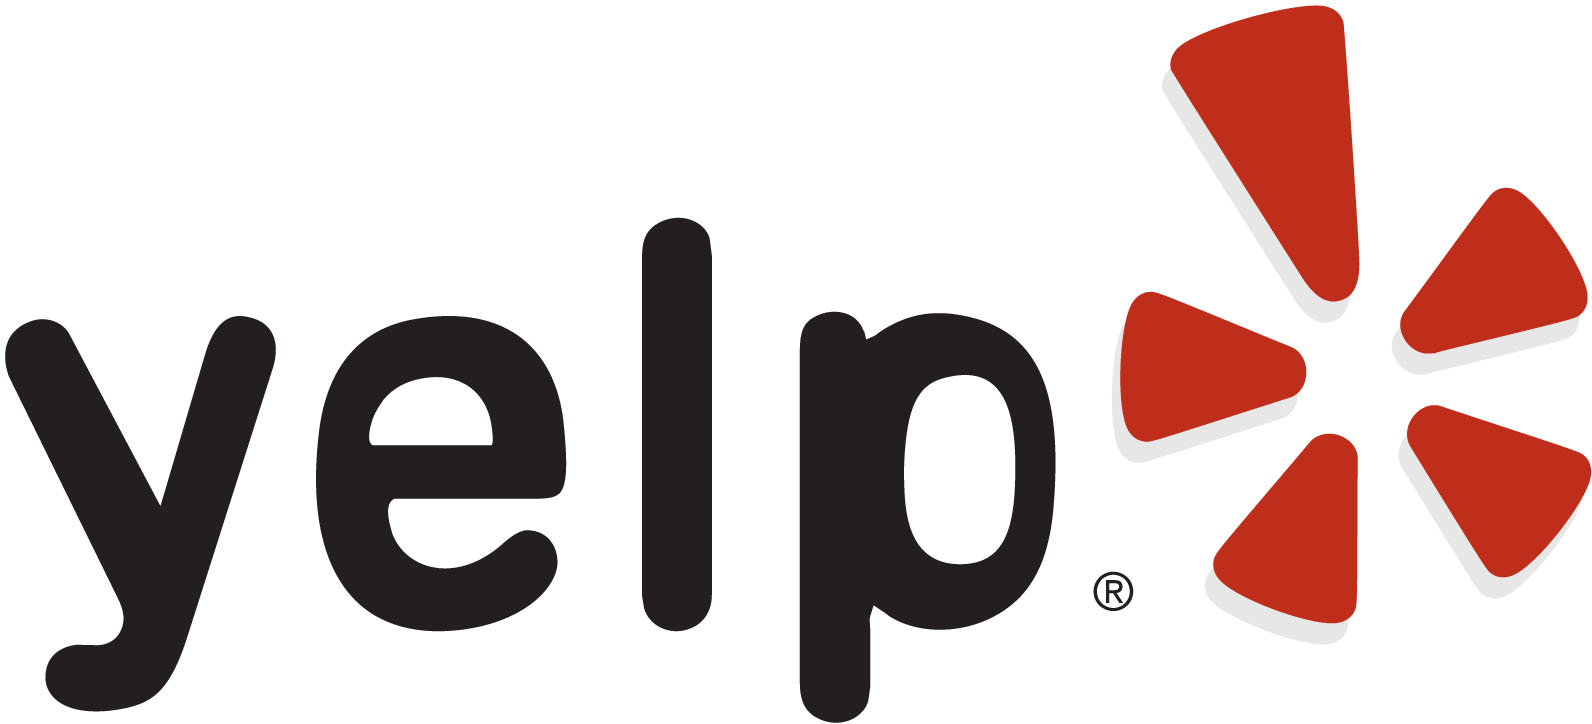 805 Productions create videos for Yelp and local companies in Santa Barbara area.